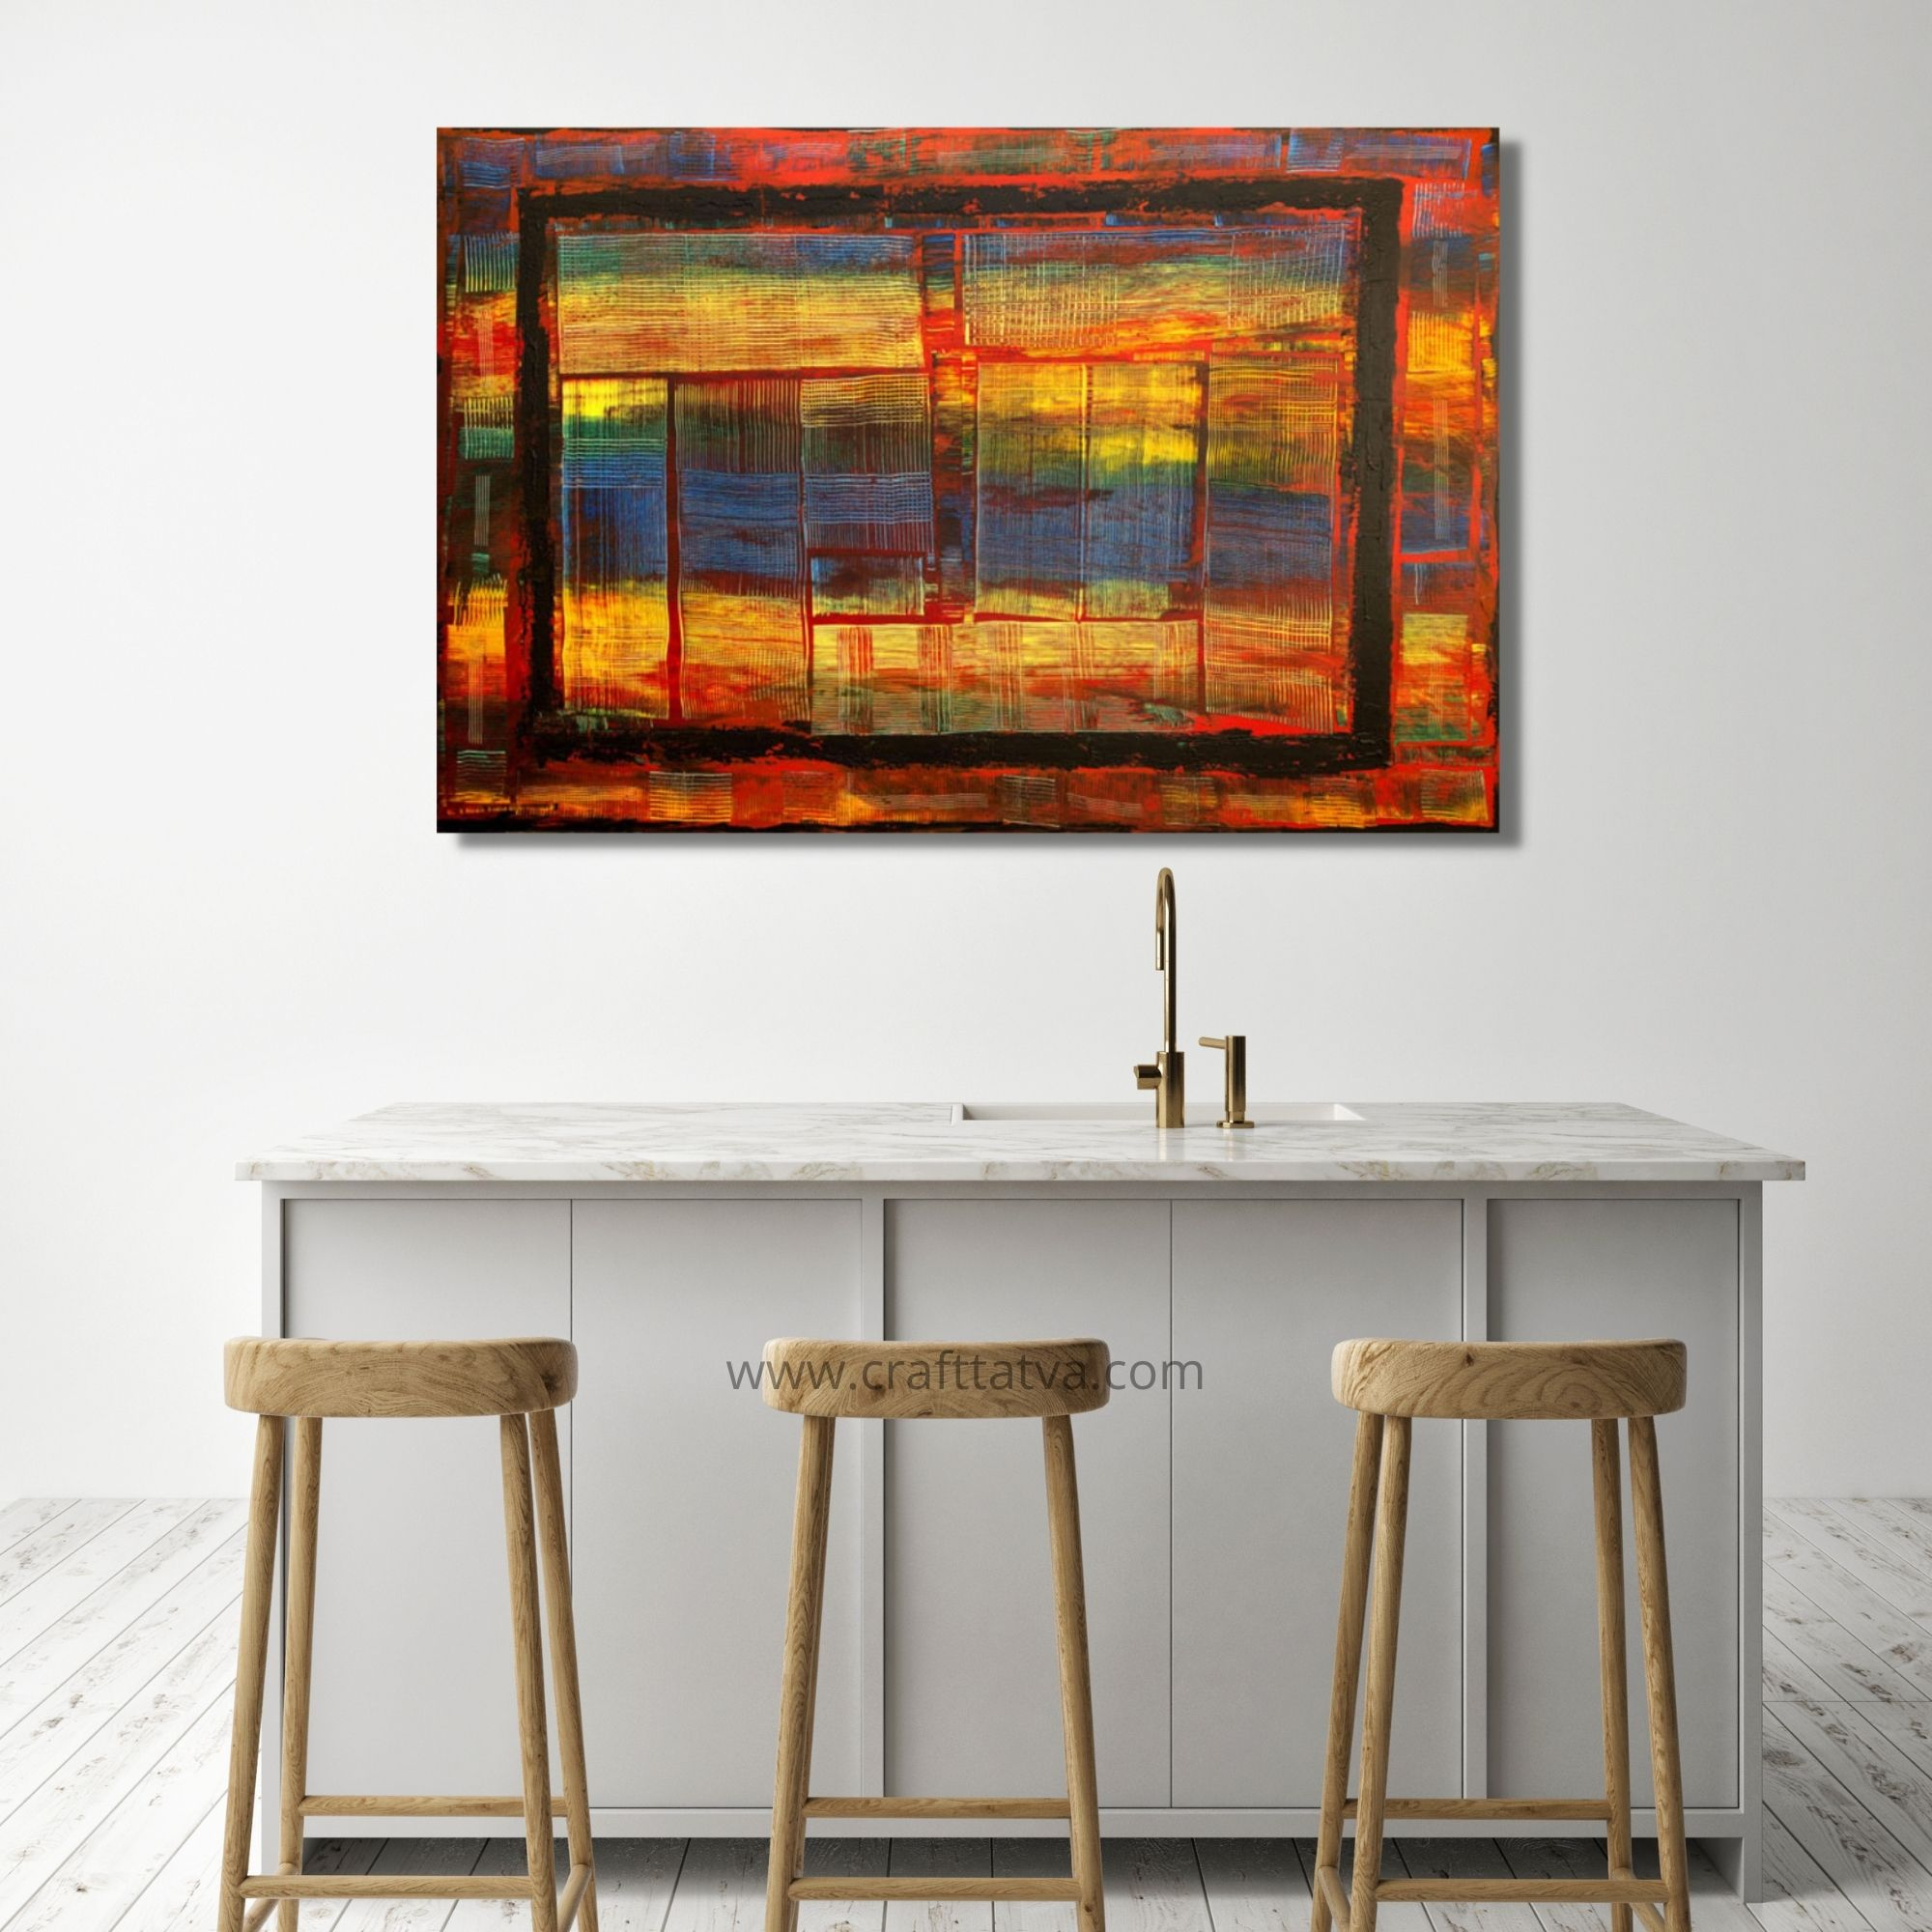 Abstract 1 - Acrylic on canvas - 6 X 4 ft